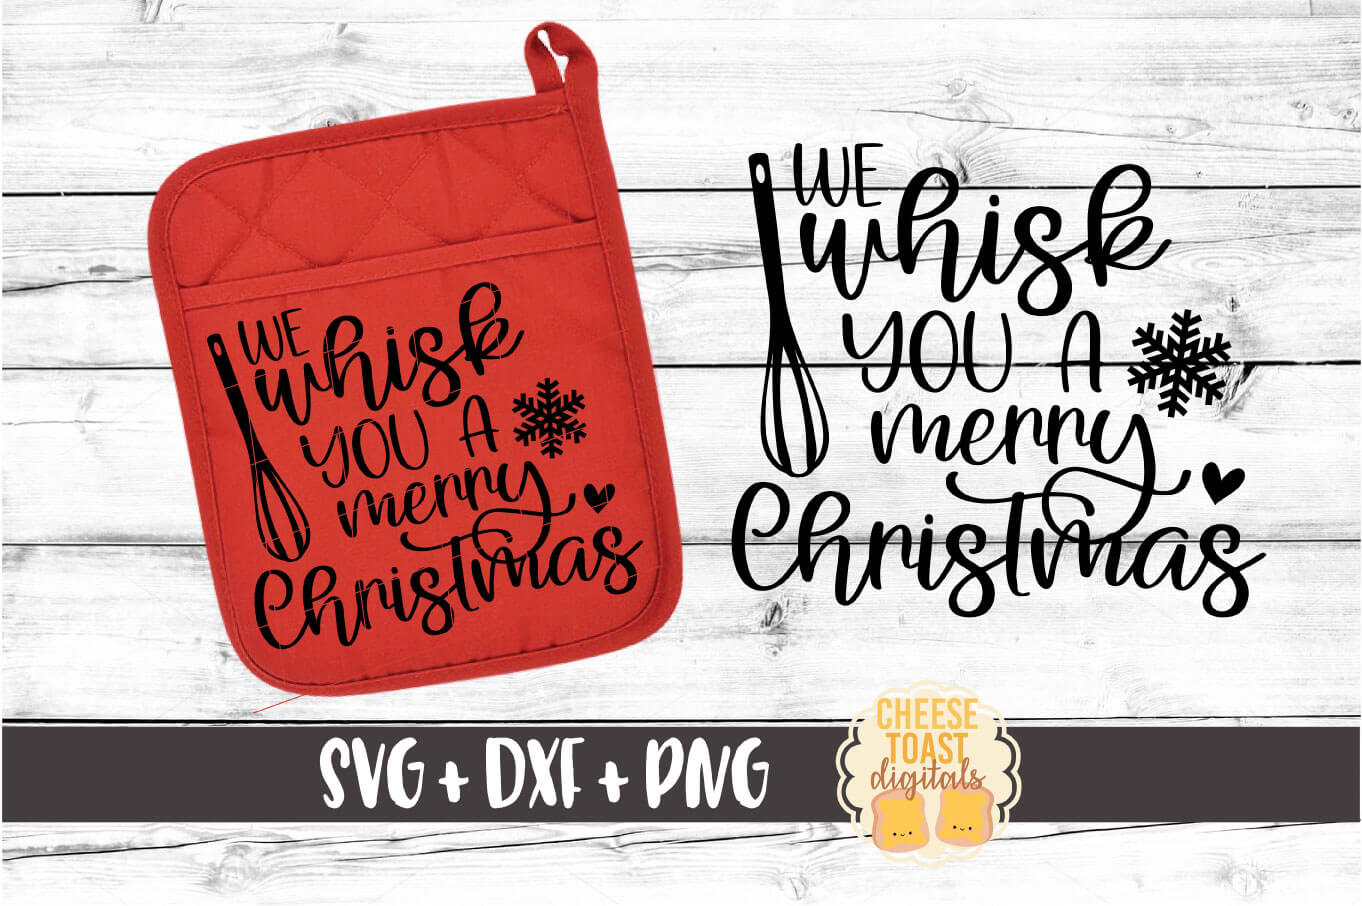 We Whisk You A Merry Christmas - Pot Holder Design